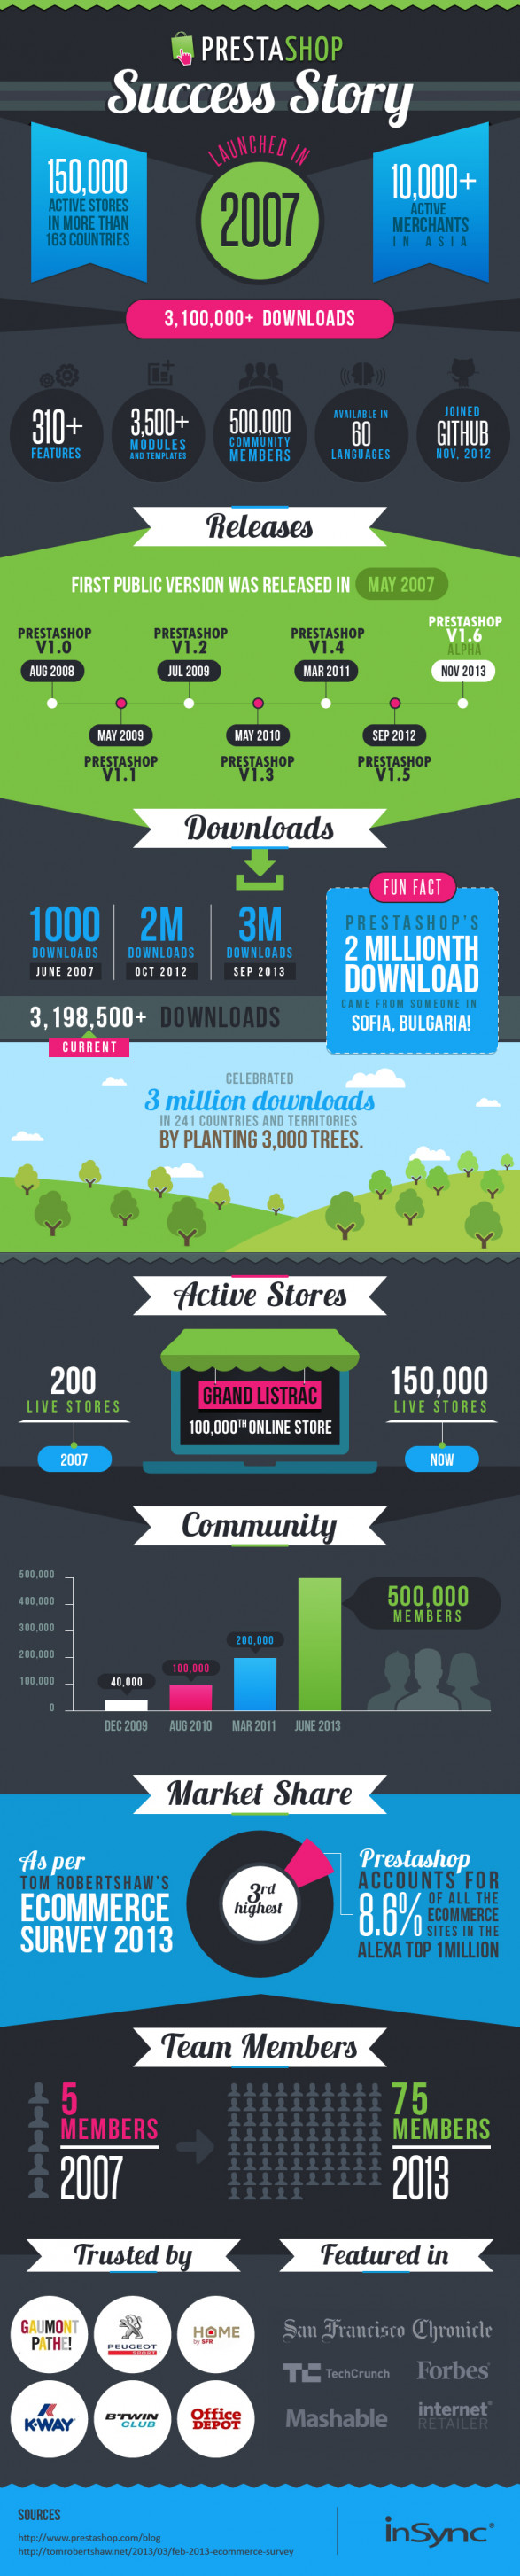 Infographic: The PrestaShop Success Story